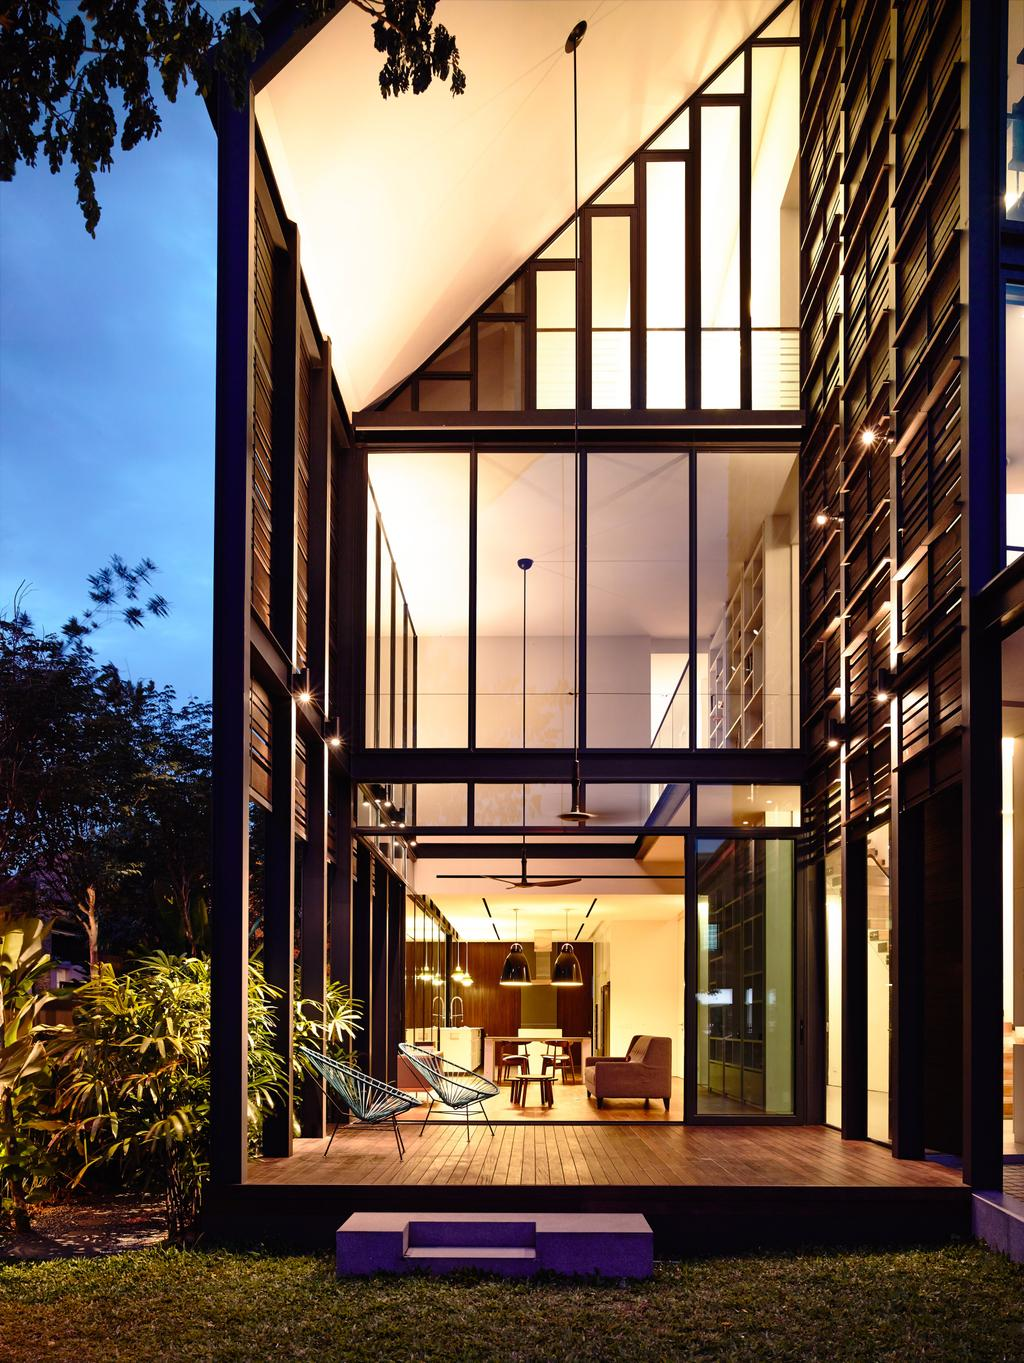 Contemporary, Landed, Faber Terrace, Architect, HYLA Architects, Arecaceae, Flora, Palm Tree, Plant, Tree